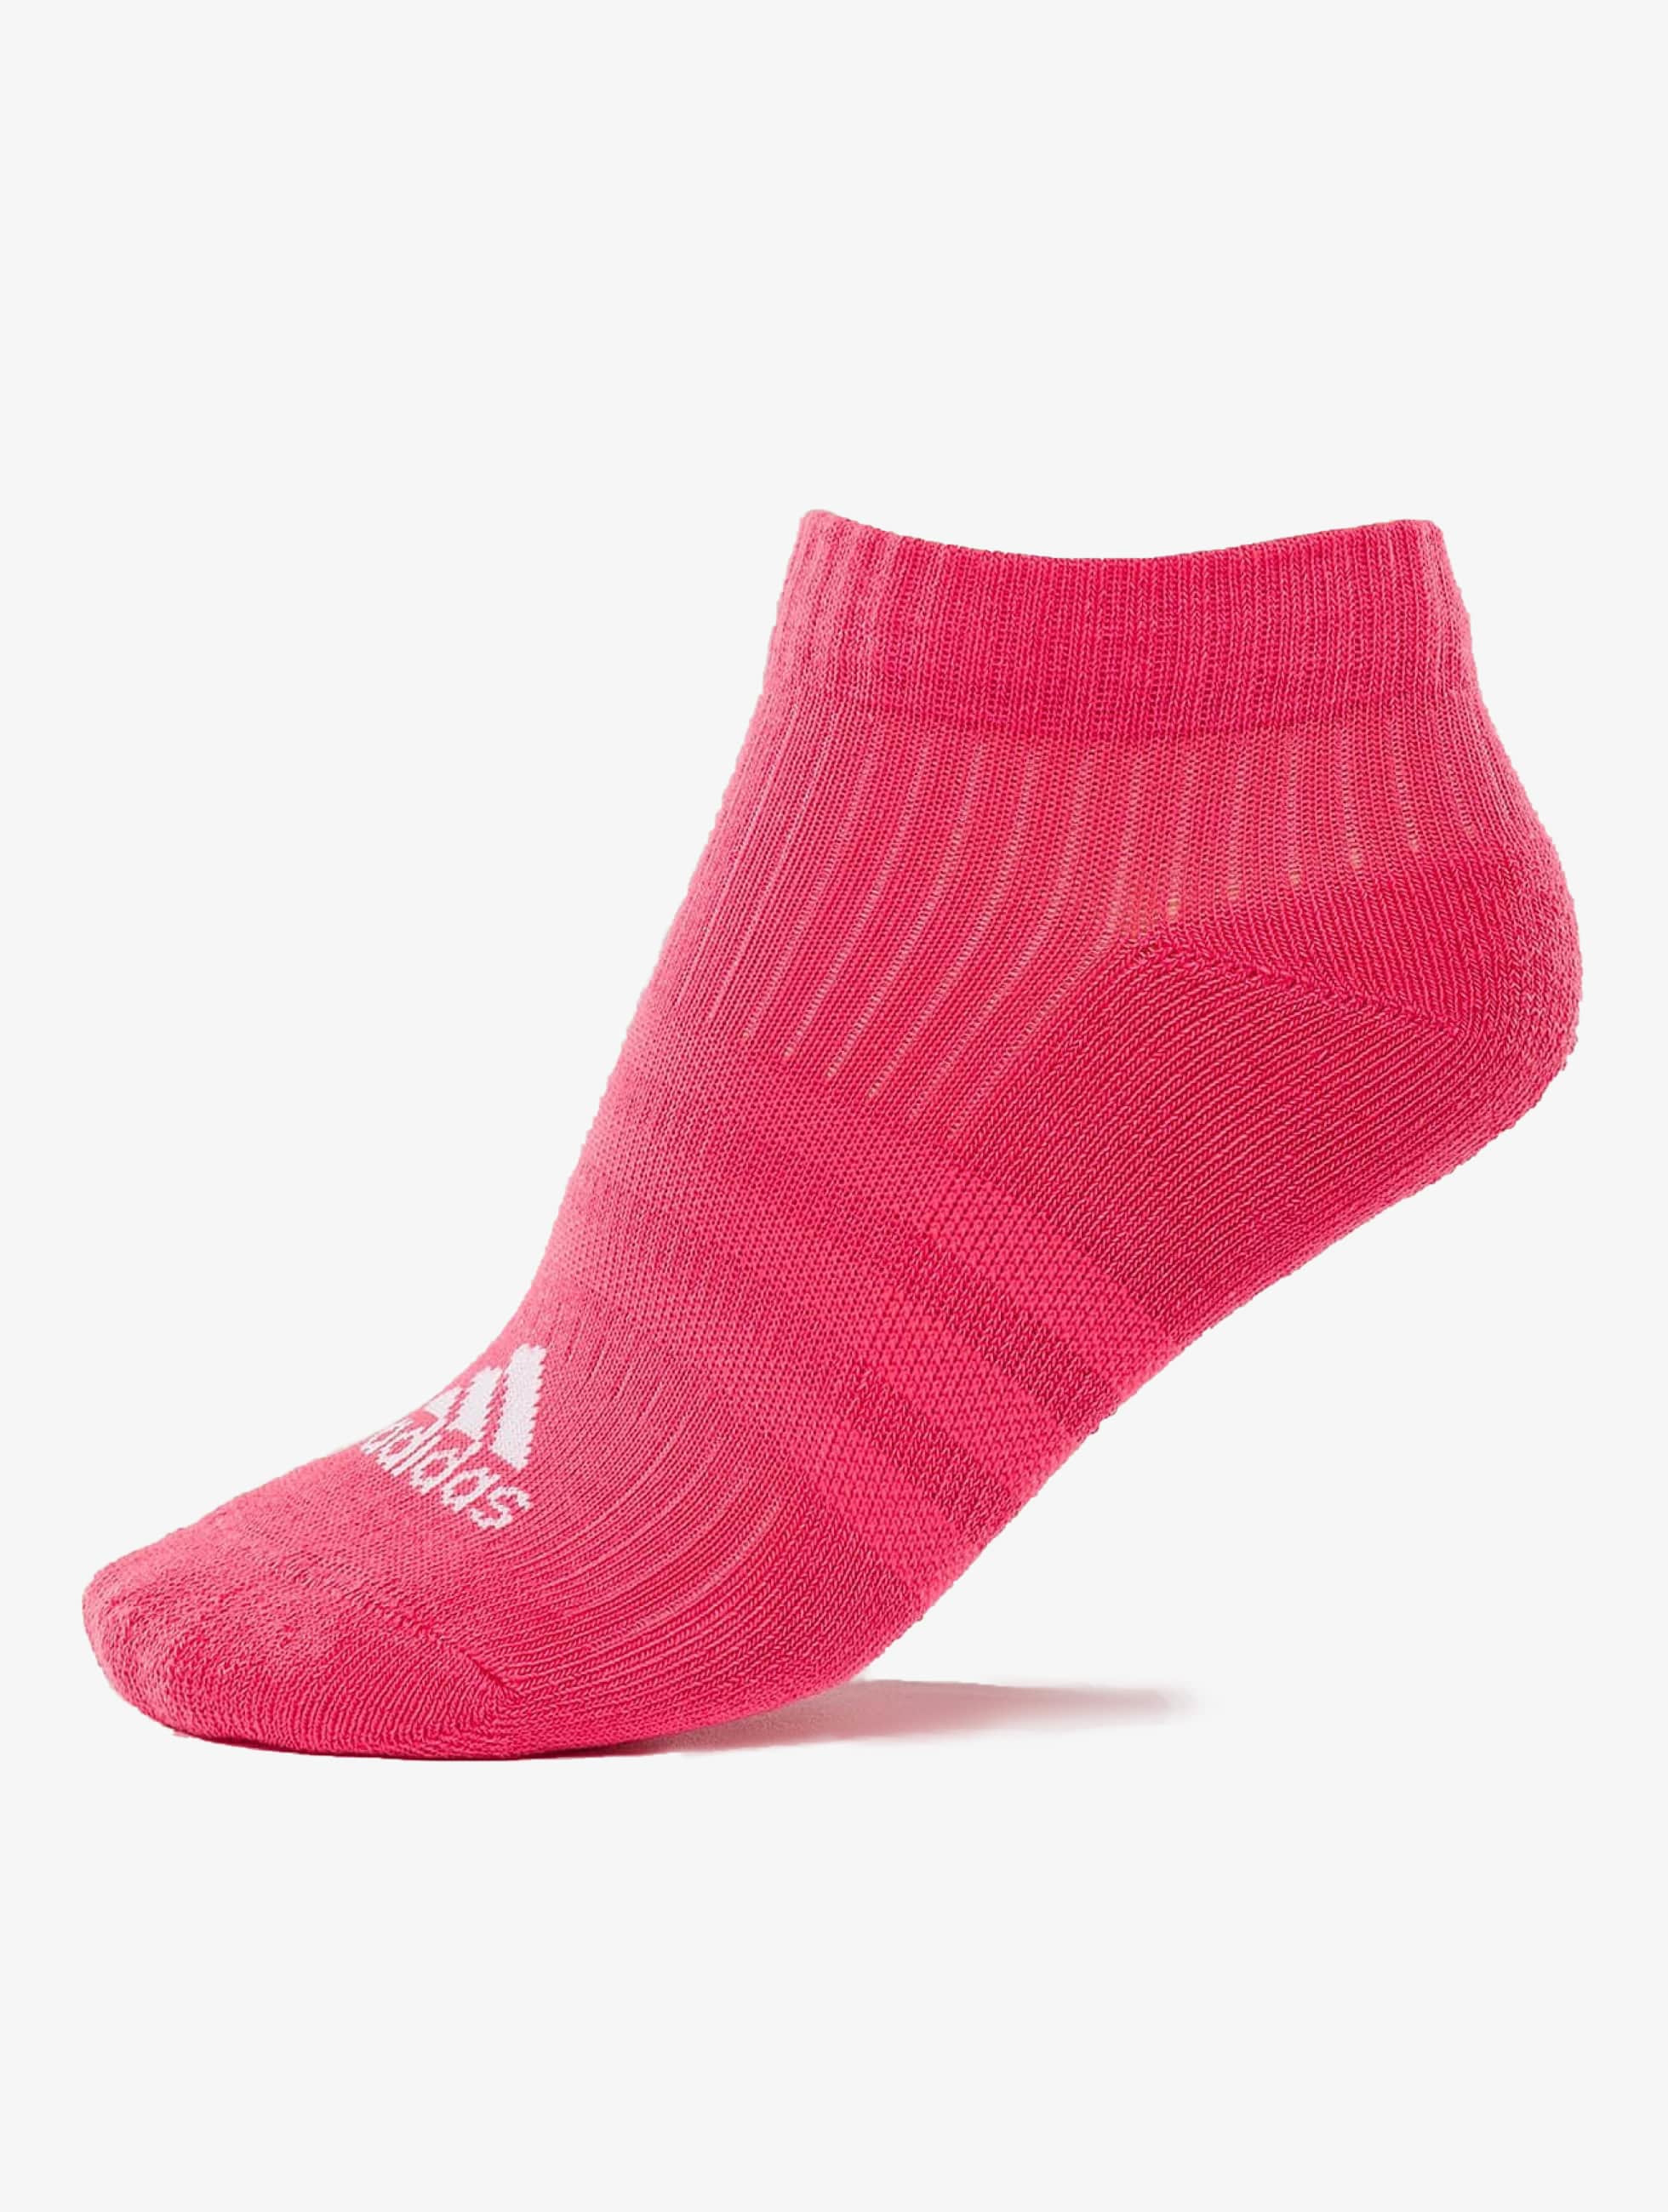 adidas Chaussettes 3-Stripes Per n-s HS 3-Pairs magenta